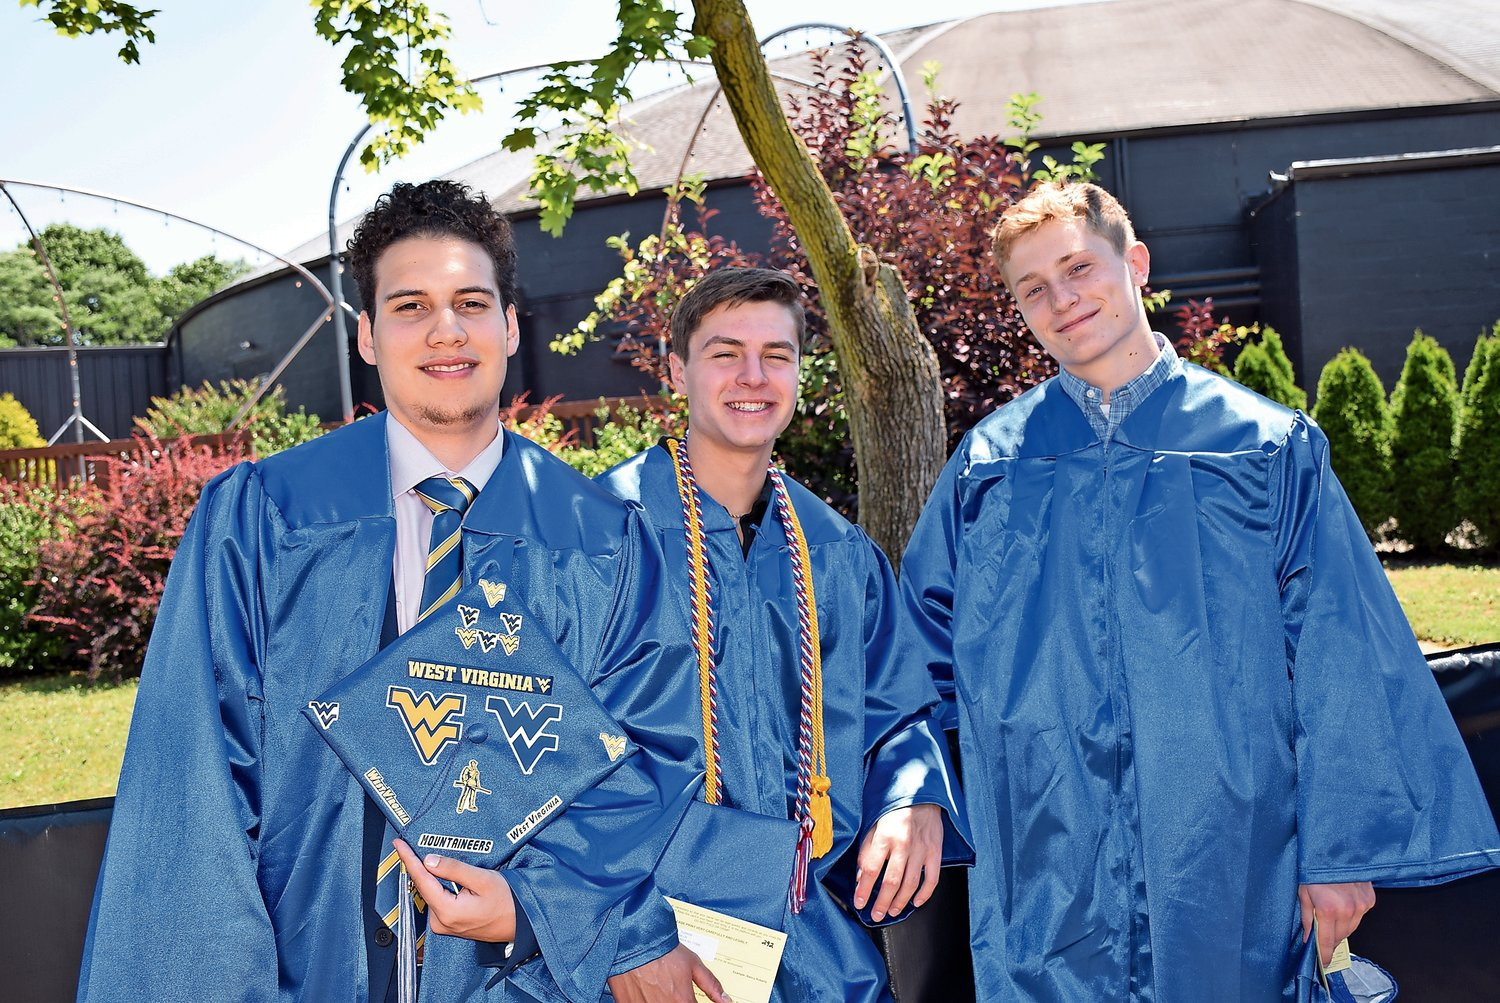 Harrison Valdes, left, proudly displayed his future university with peers Nicholas Turrini and James Thomann.